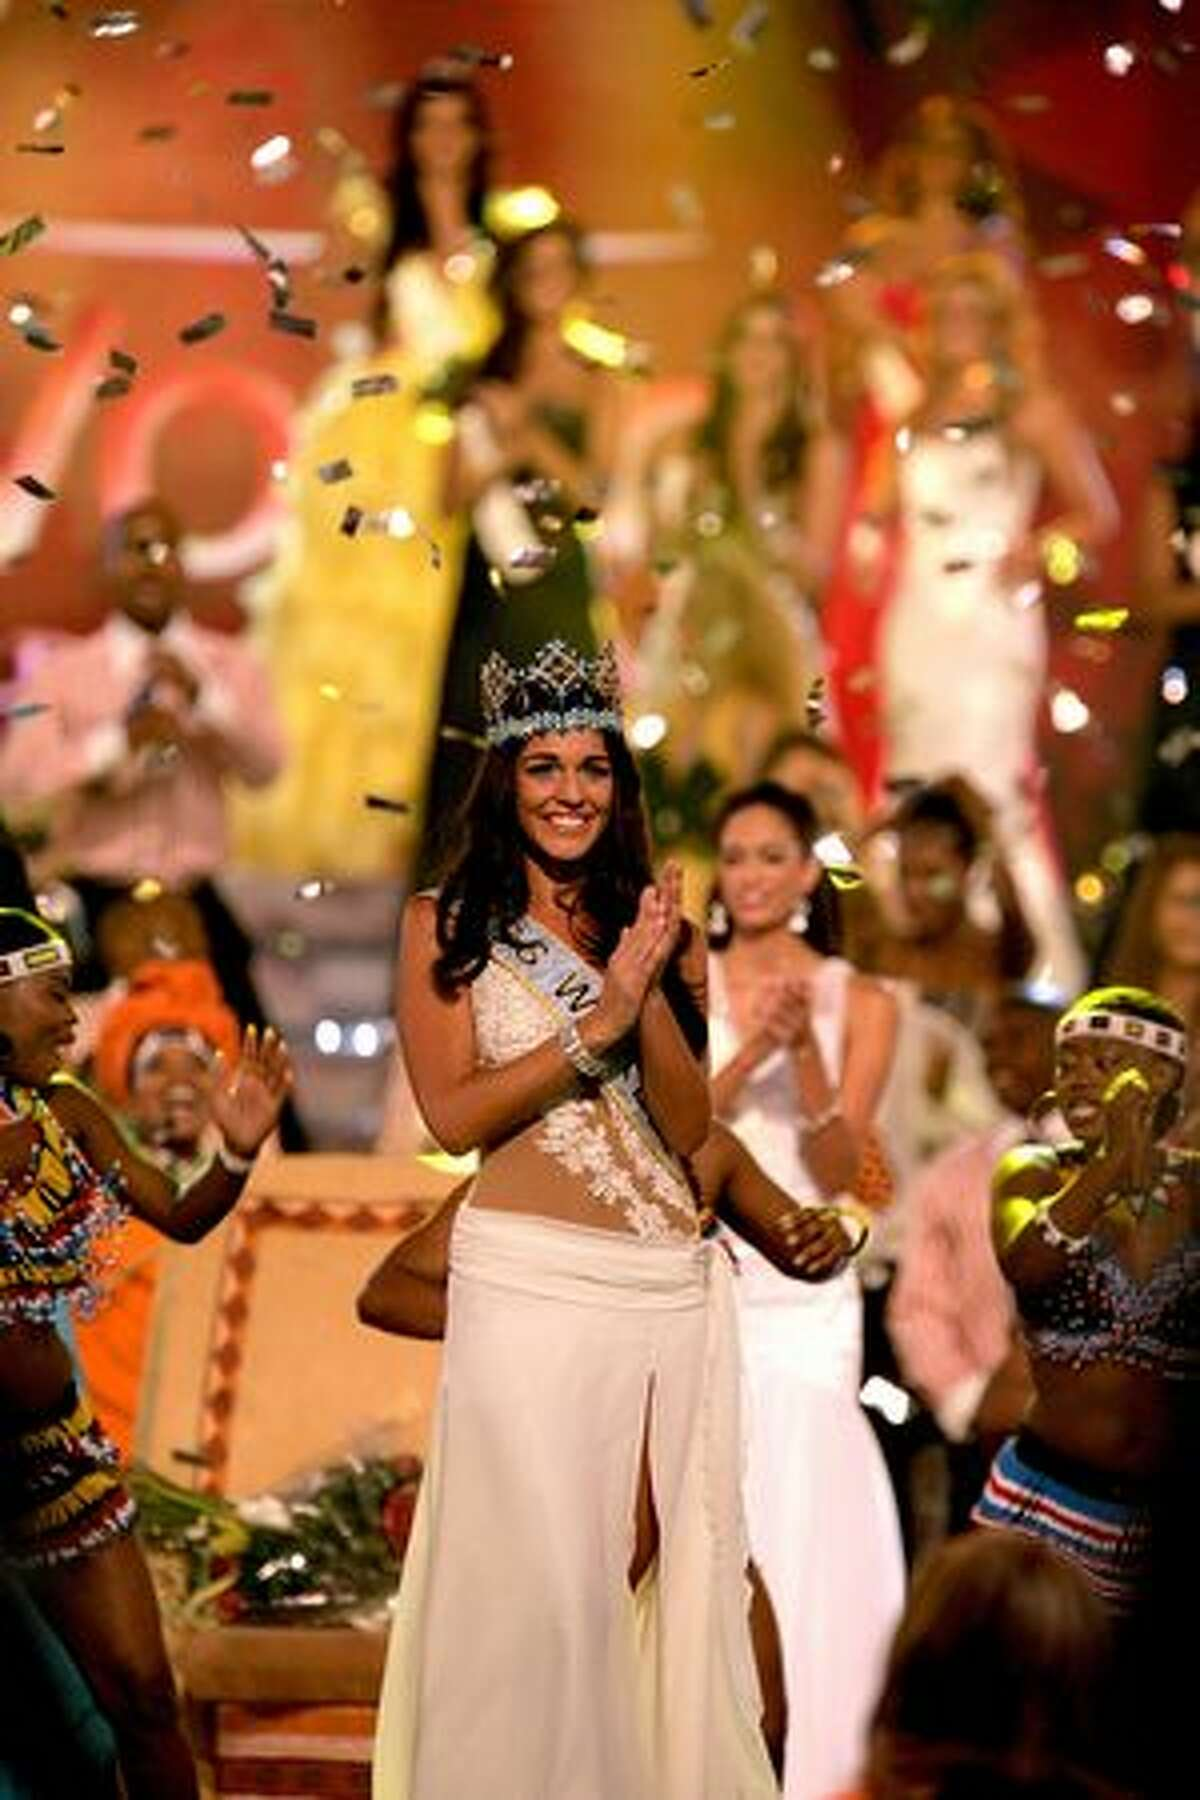 Miss Gibraltar Kaiane Aldorino is crowned Miss World 2009 at Gallagher Convention Center in Johannesburg, South Africa.